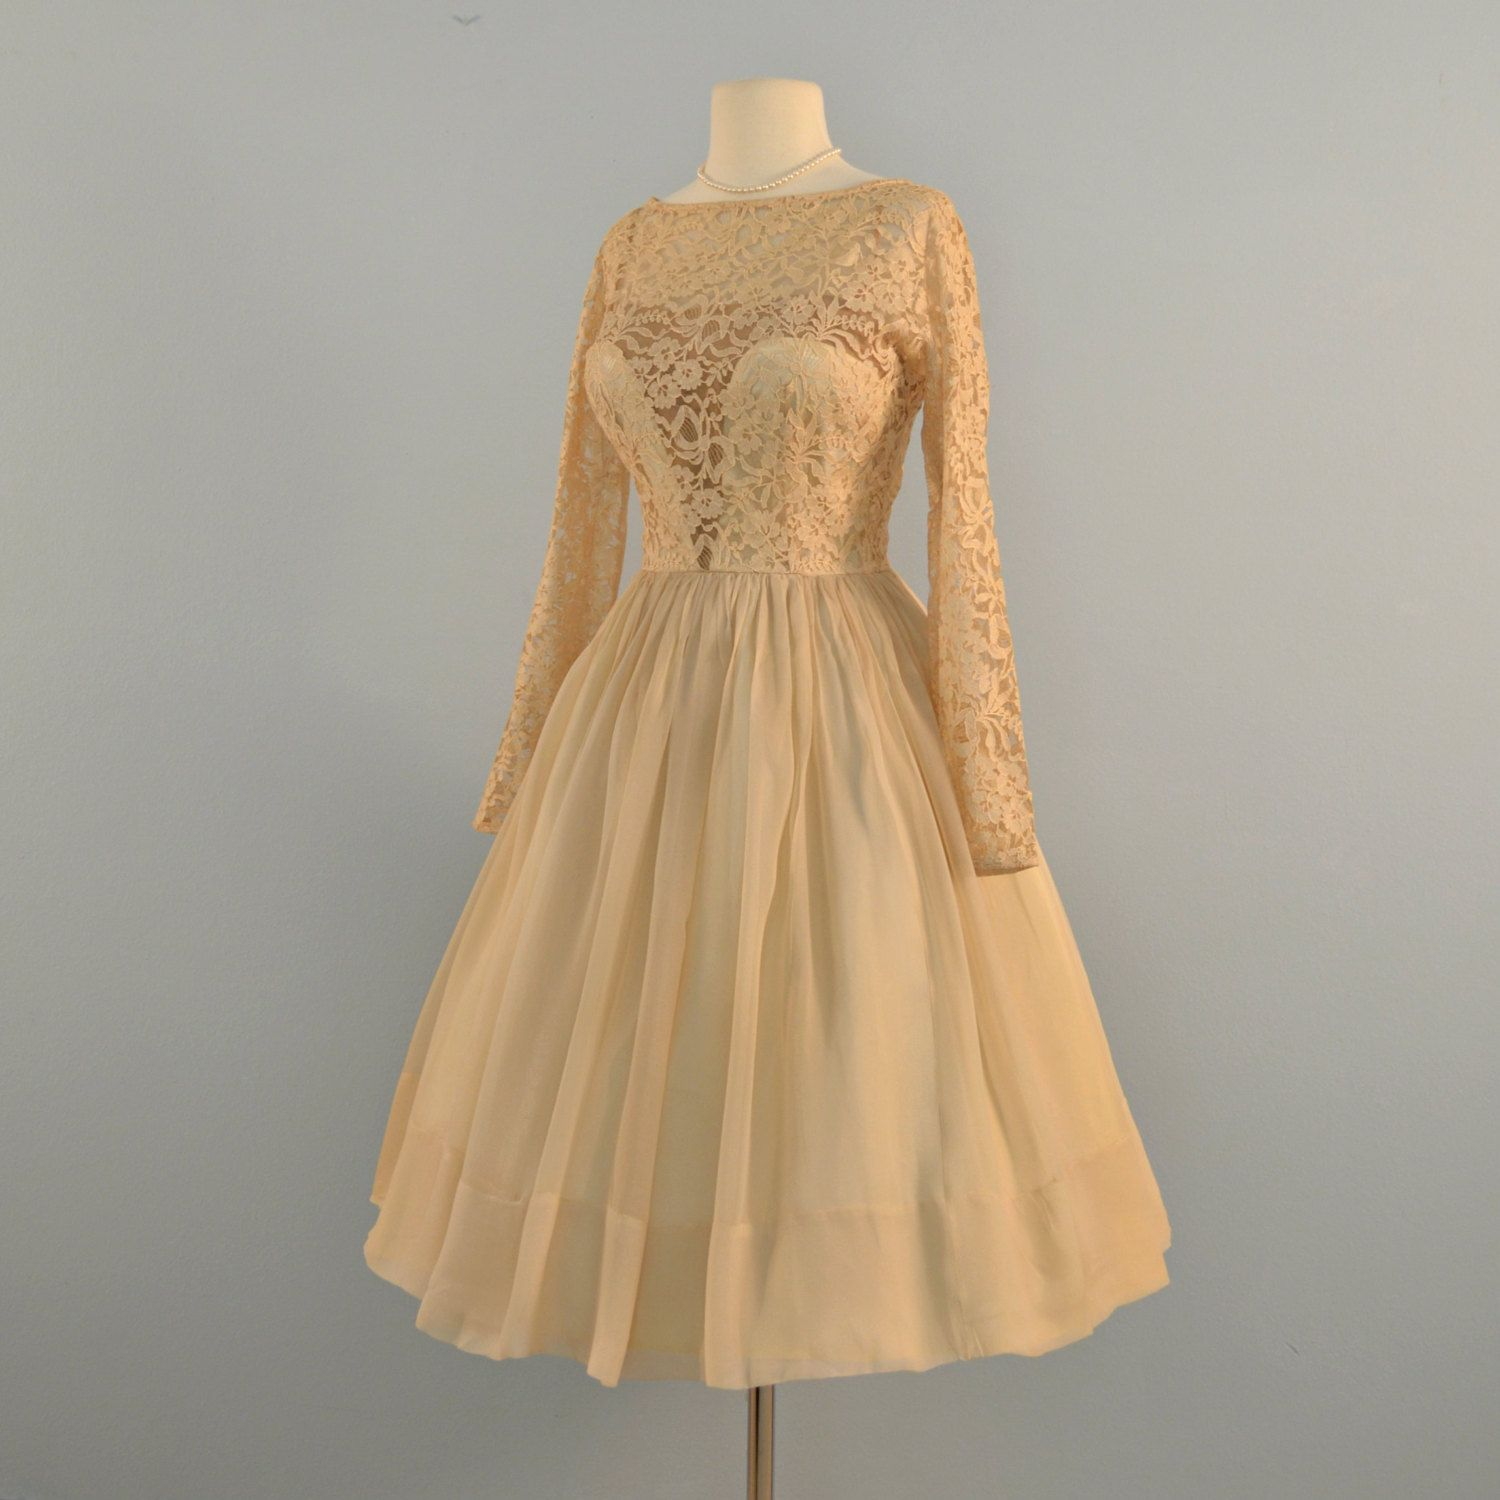 Saks Fifth Avenue Wedding Gowns: Vintage 1950s Wedding Dress...Simply Gorgeous SAKS FIFTH